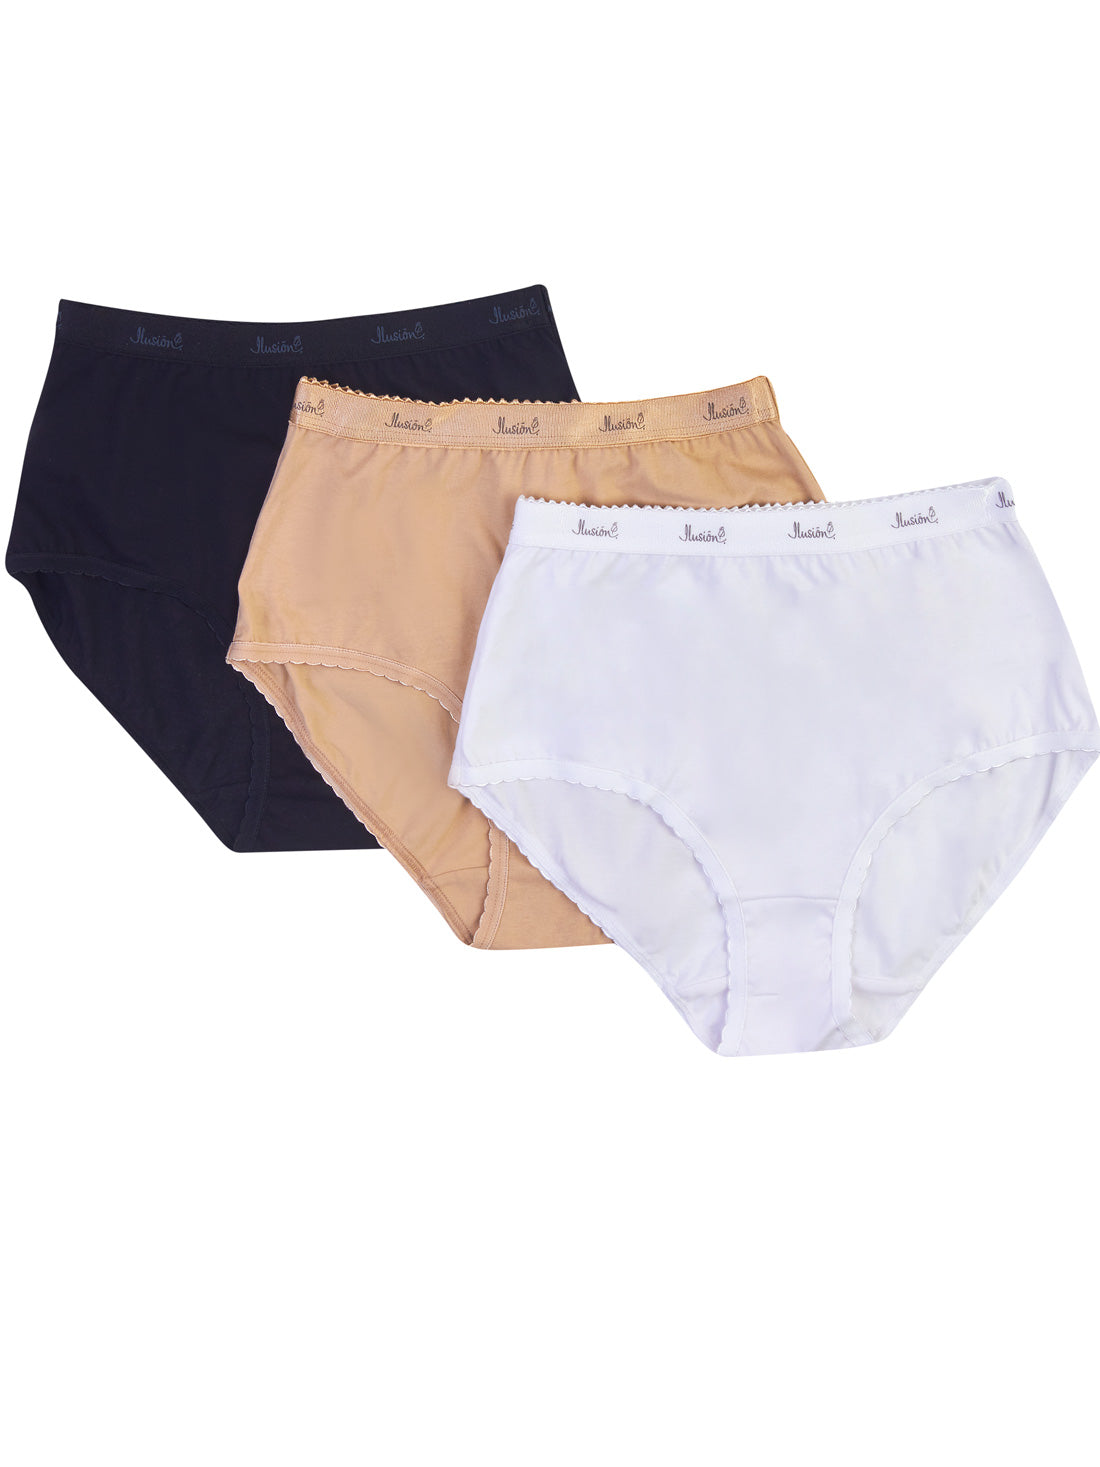 3Pack | High Rise Cotton Brief 31342